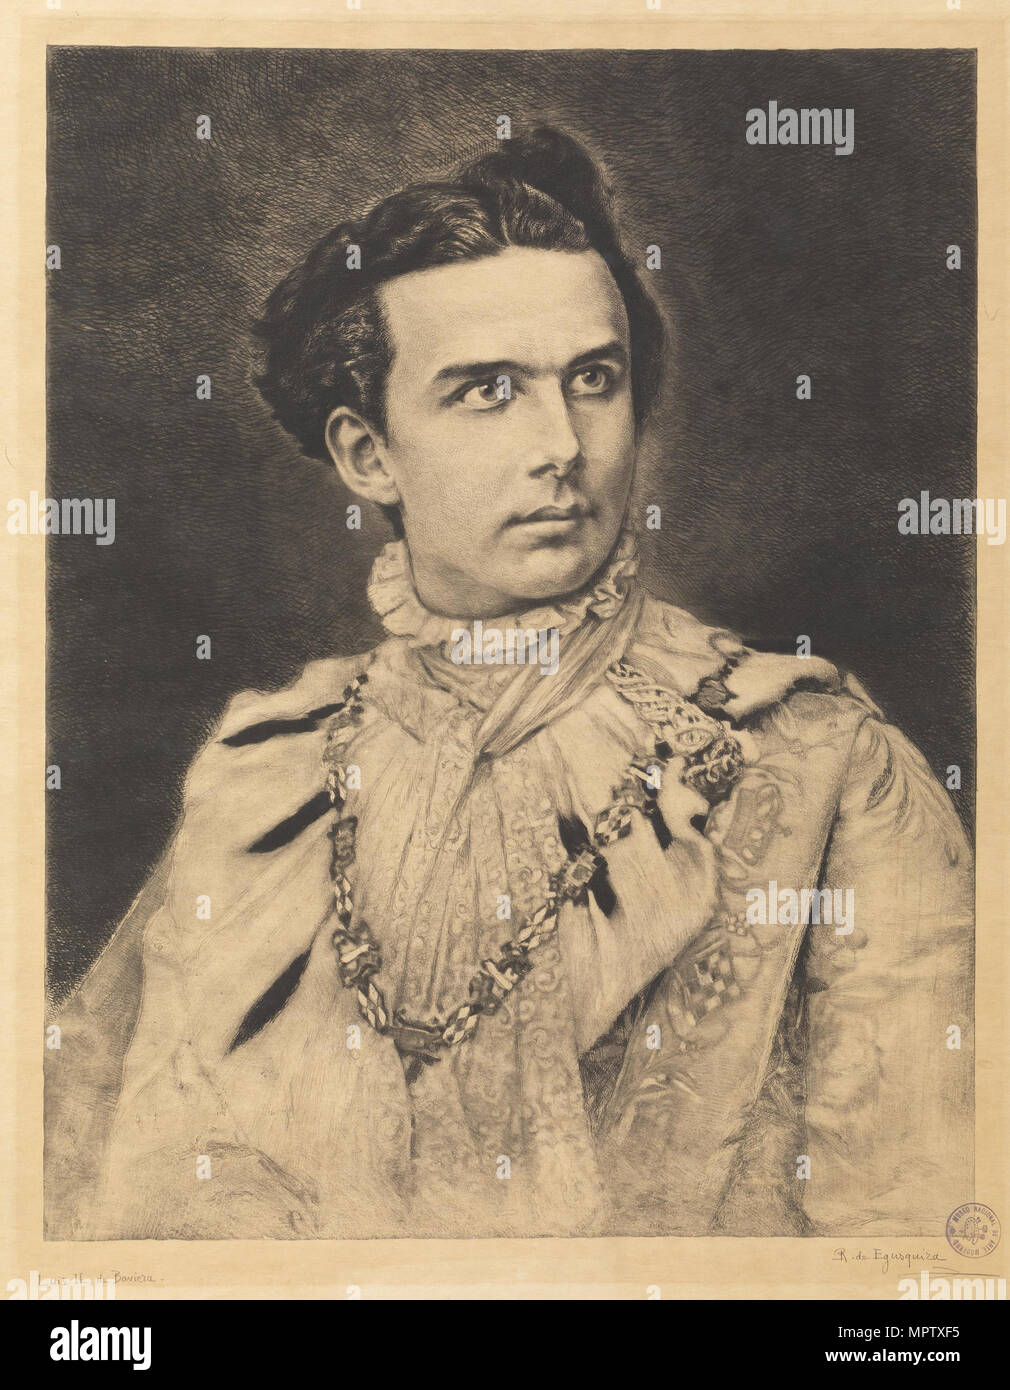 Portrait of Ludwig II of Bavaria (1845-1886). - Stock Image